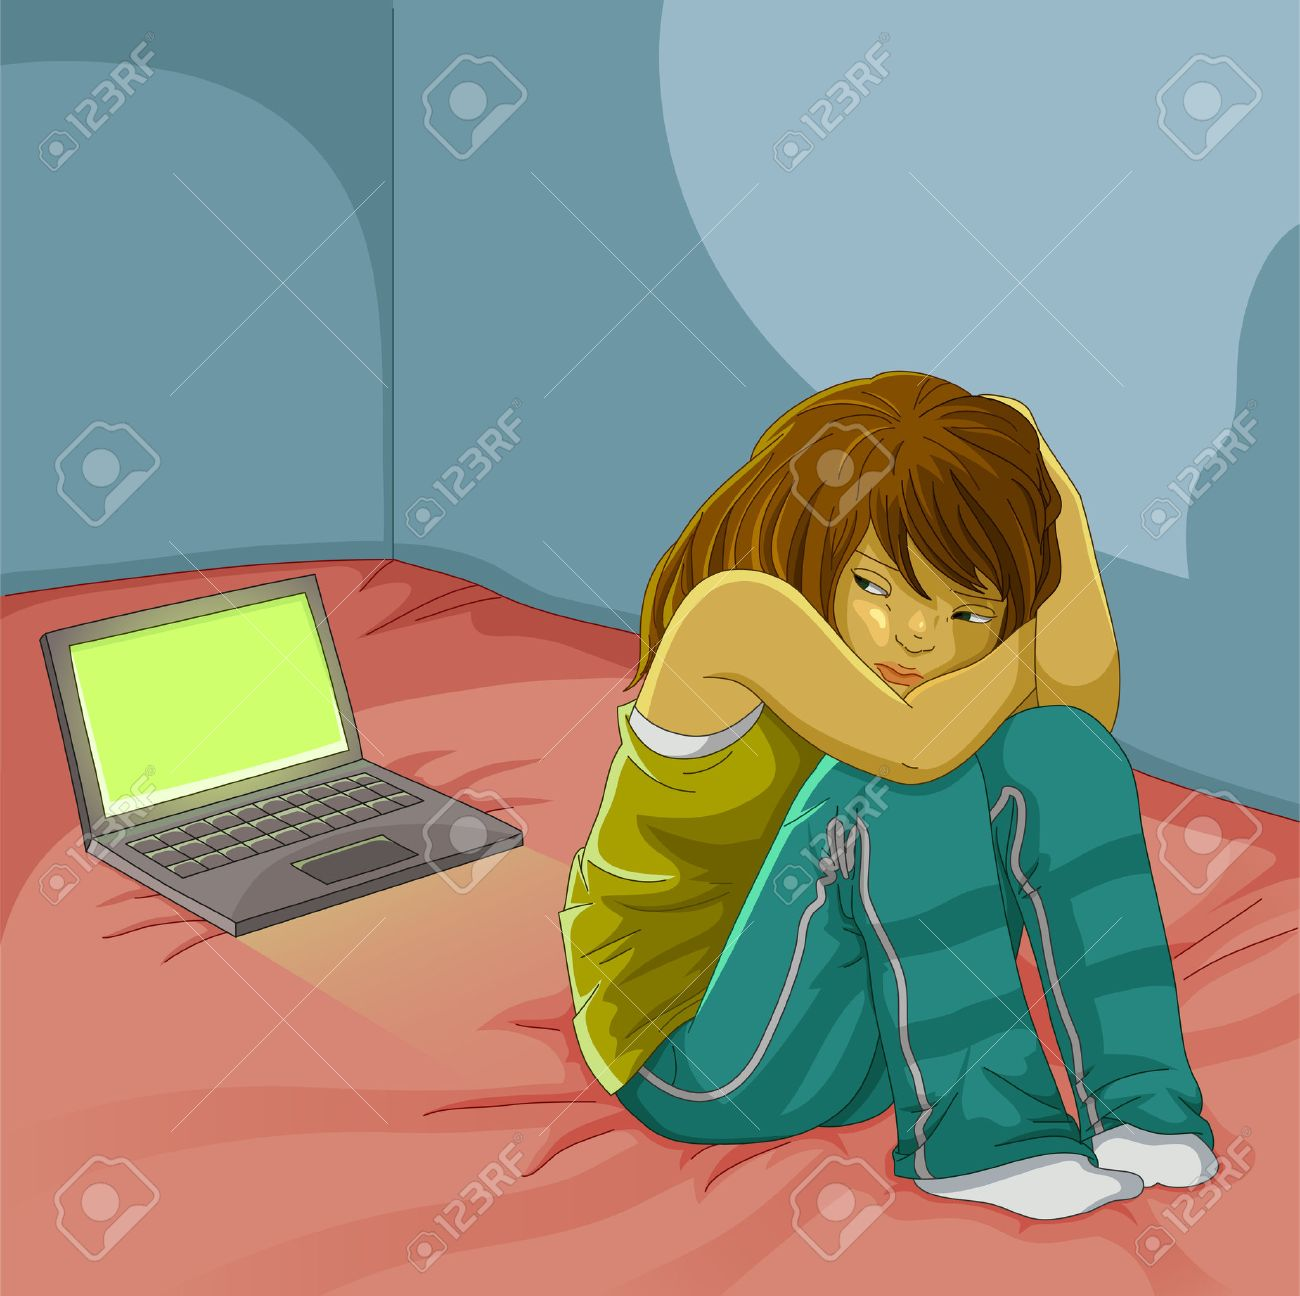 Sad Girl Sitting Alone Next To Her Open Laptop Royalty Free Cliparts